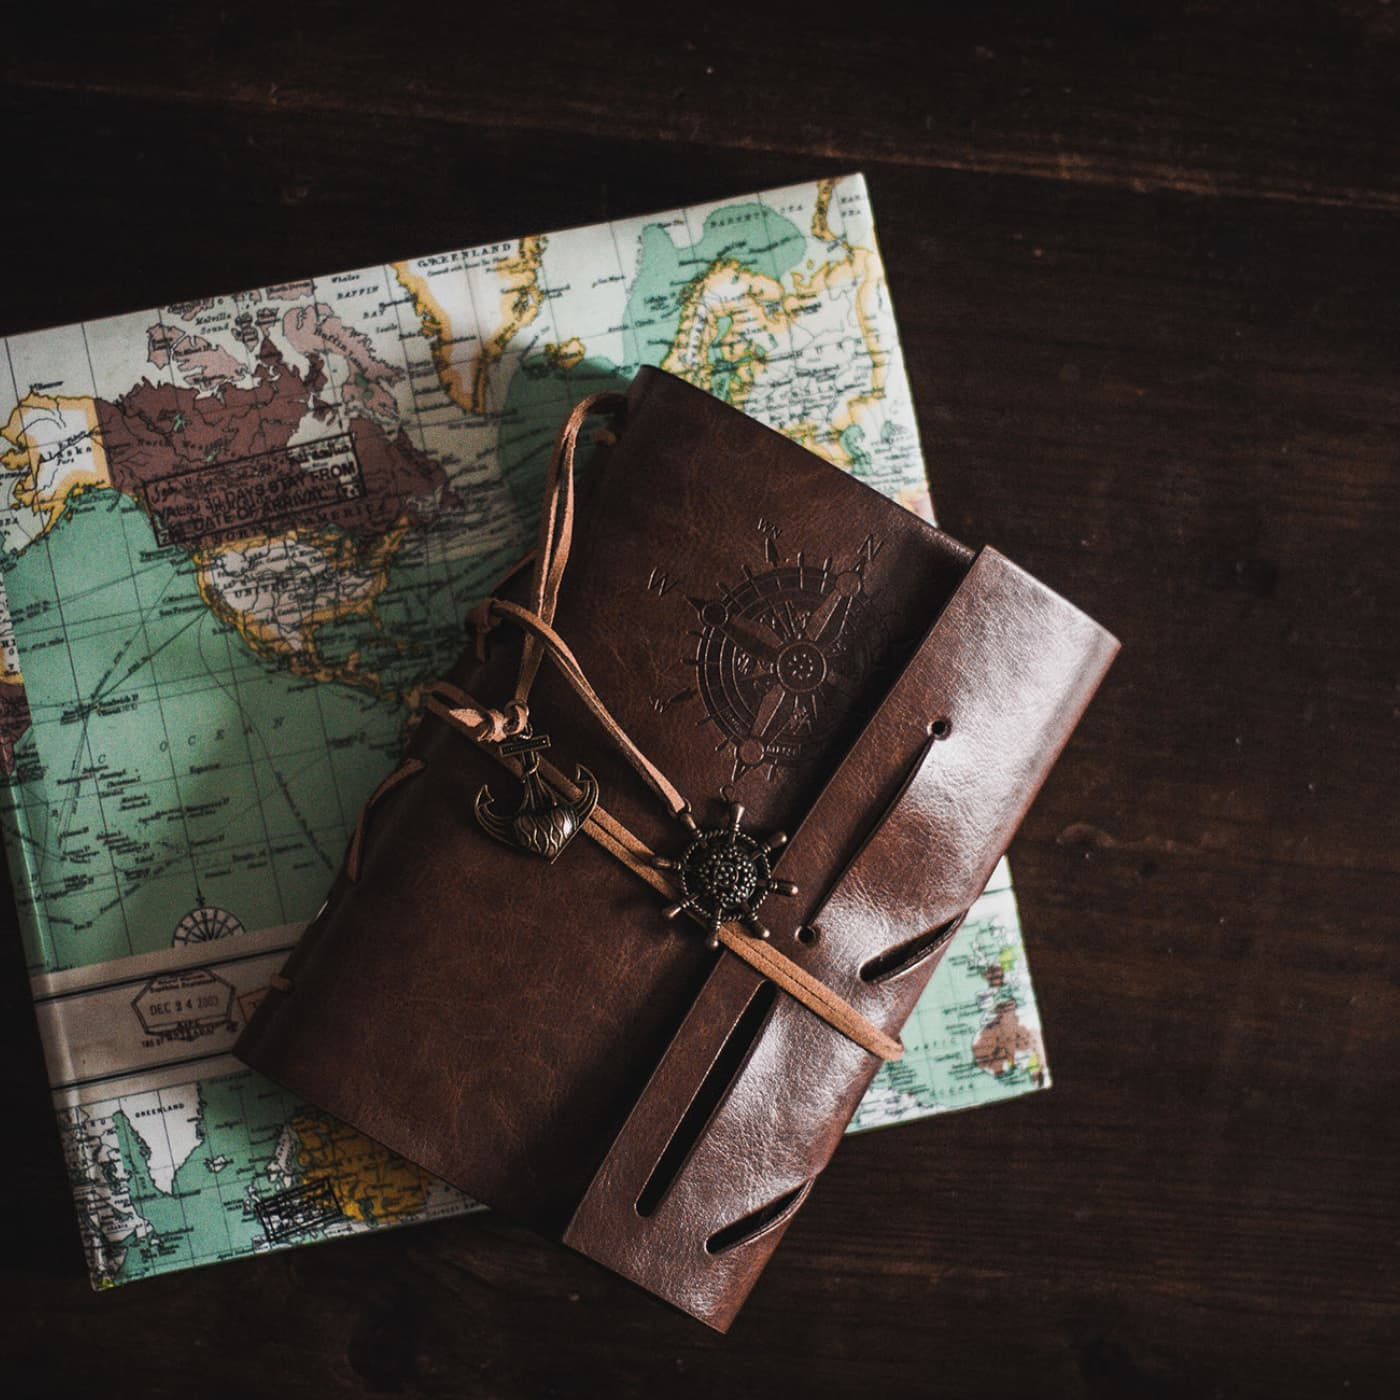 A travel journal and map on a dark background.